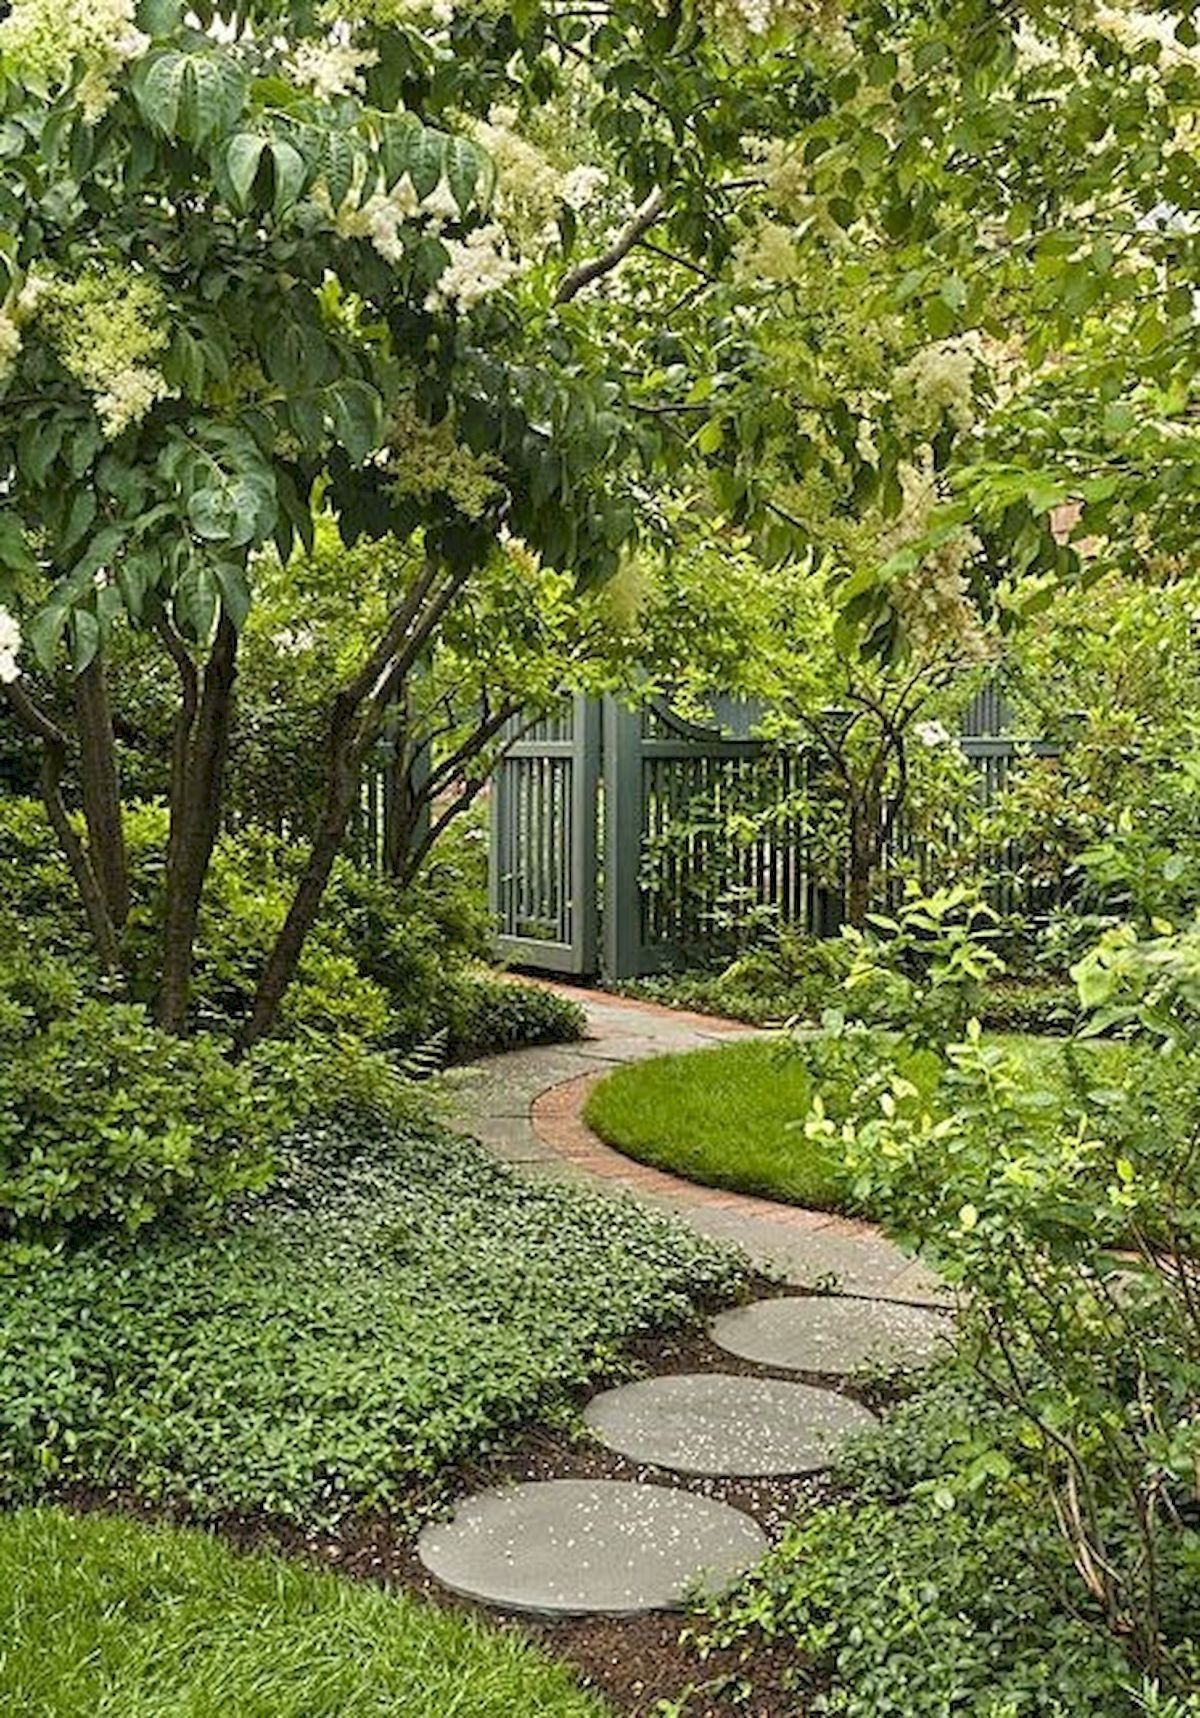 50 Best Garden Design Ideas For Making Your Page Beautiful 79 Home Decor Diy Design Small Garden Design Beautiful Gardens Beautiful Backyards